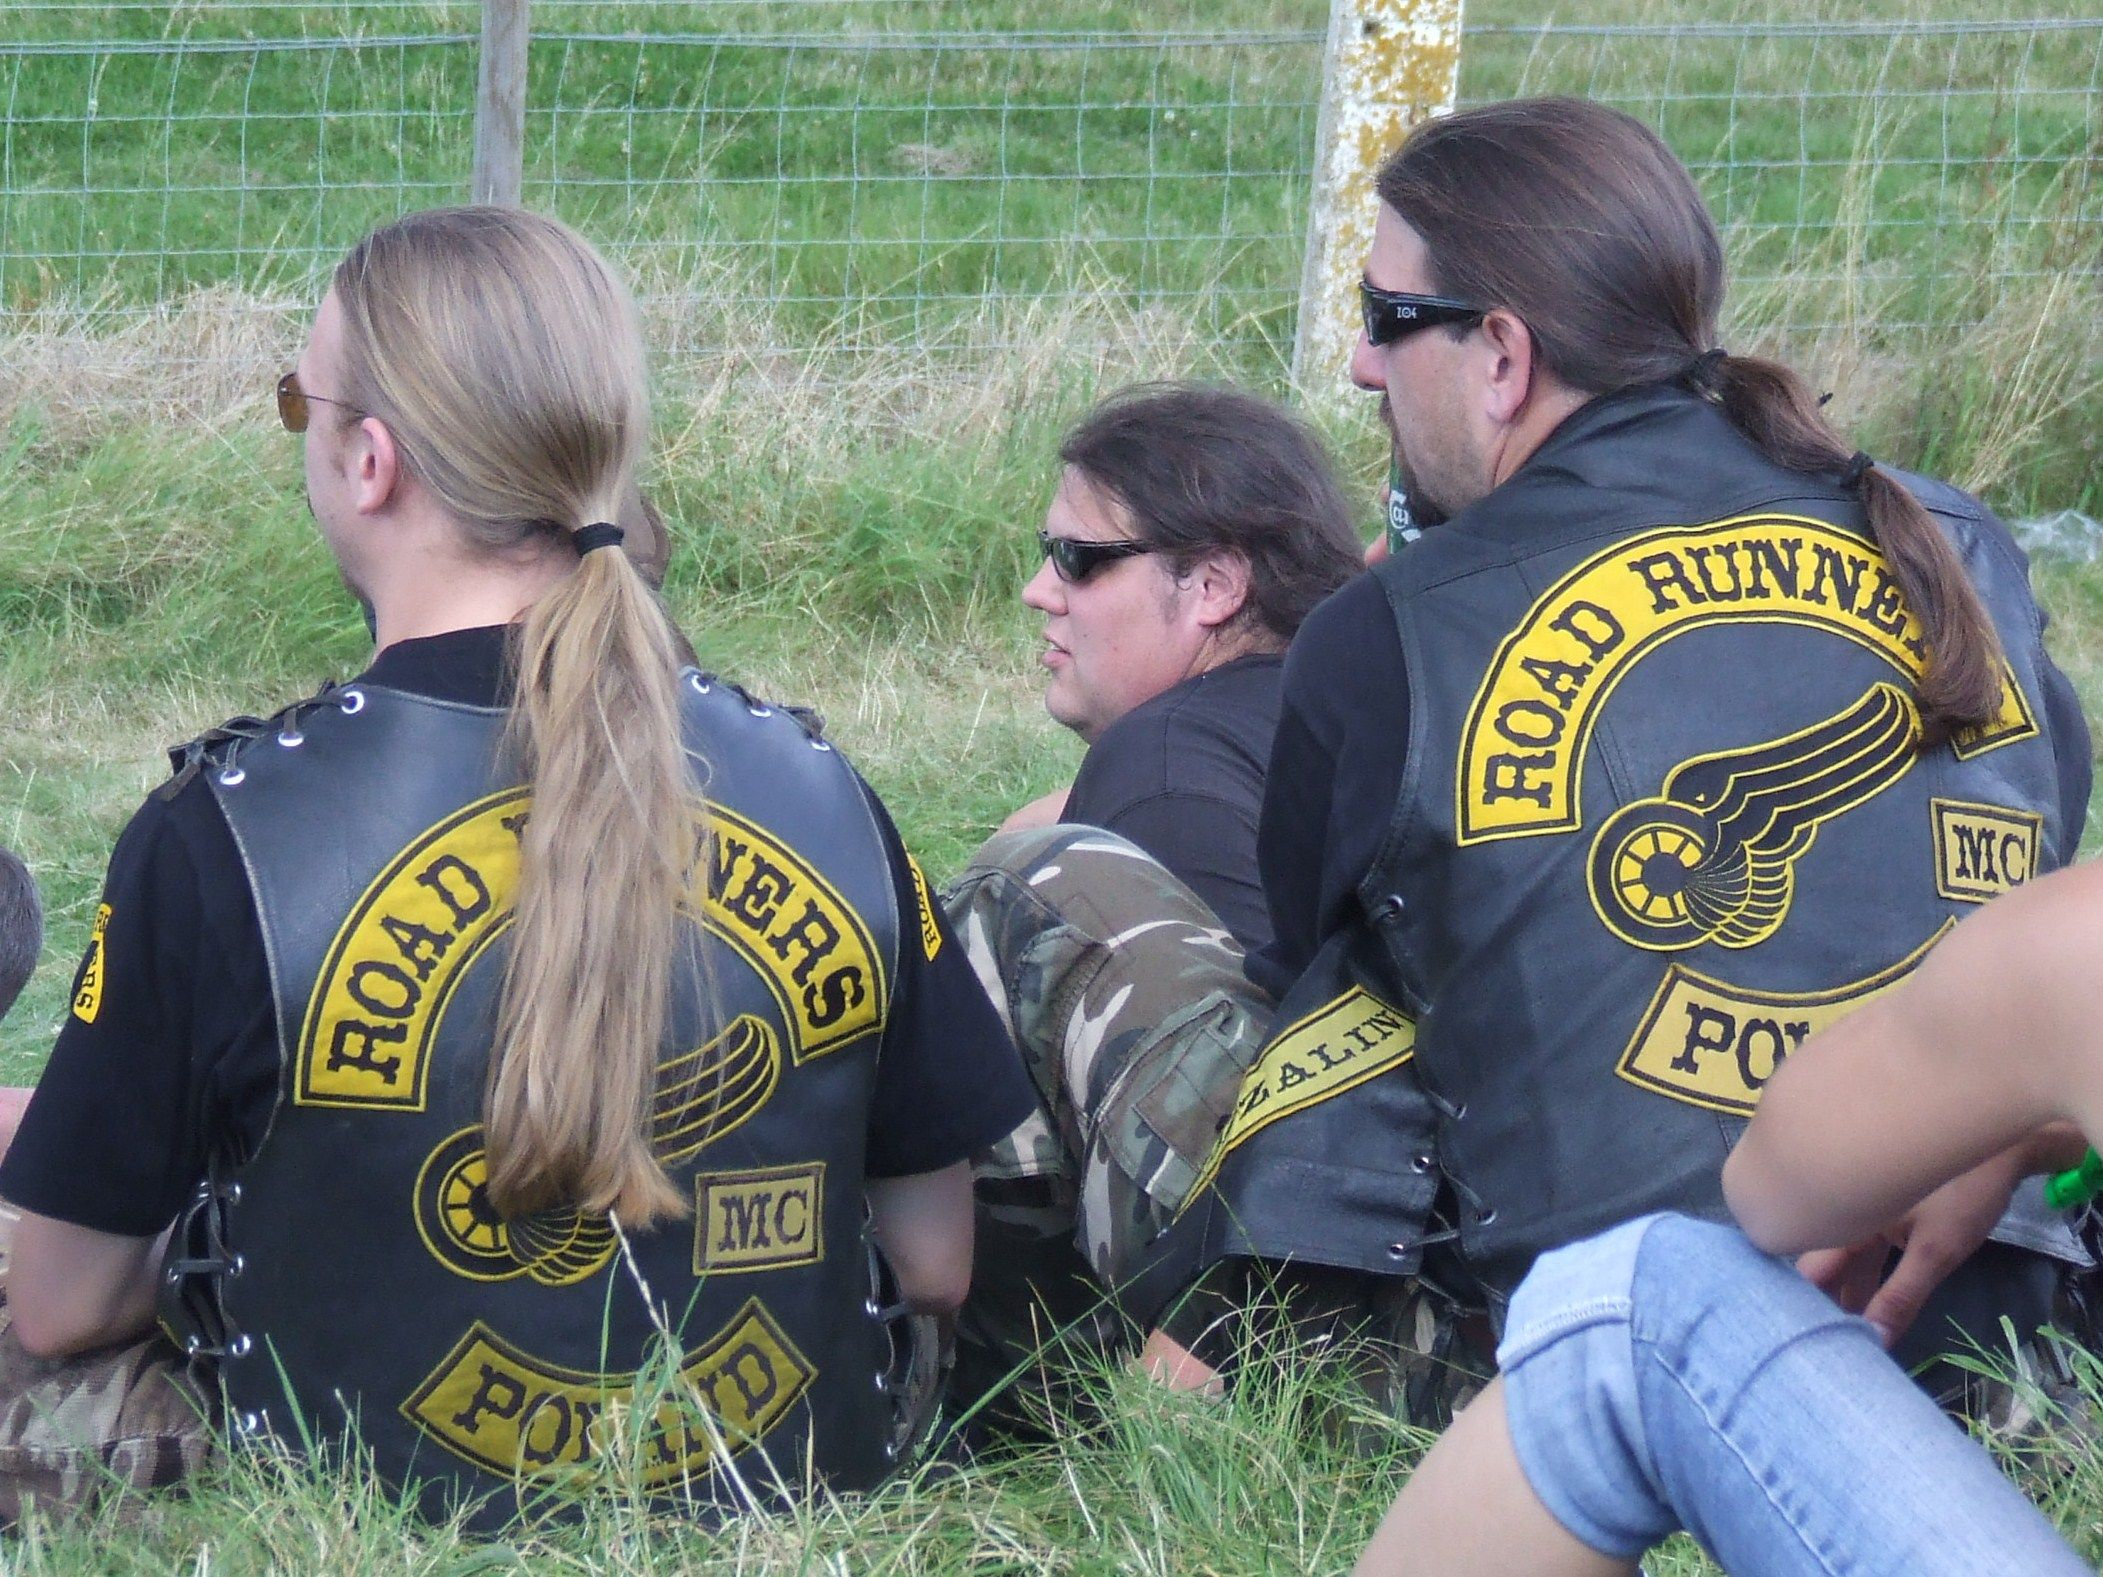 Road Runners Mc From Poland Mc Patches Motorcycle Culture Bike Gang